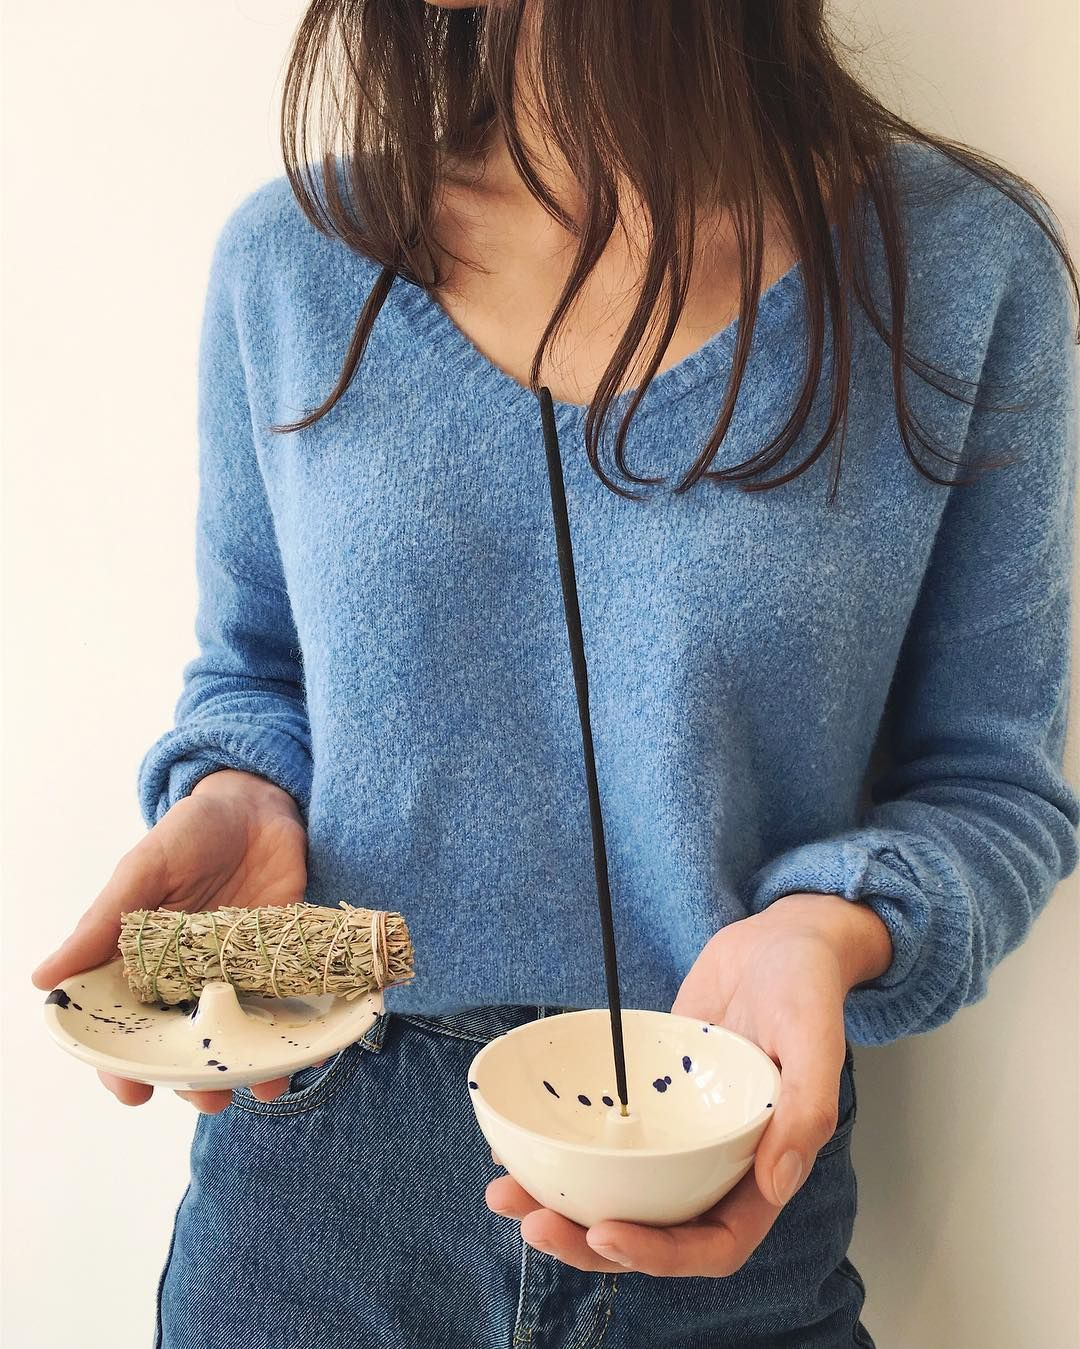 These handmade incense holders from Akai Ceramics are